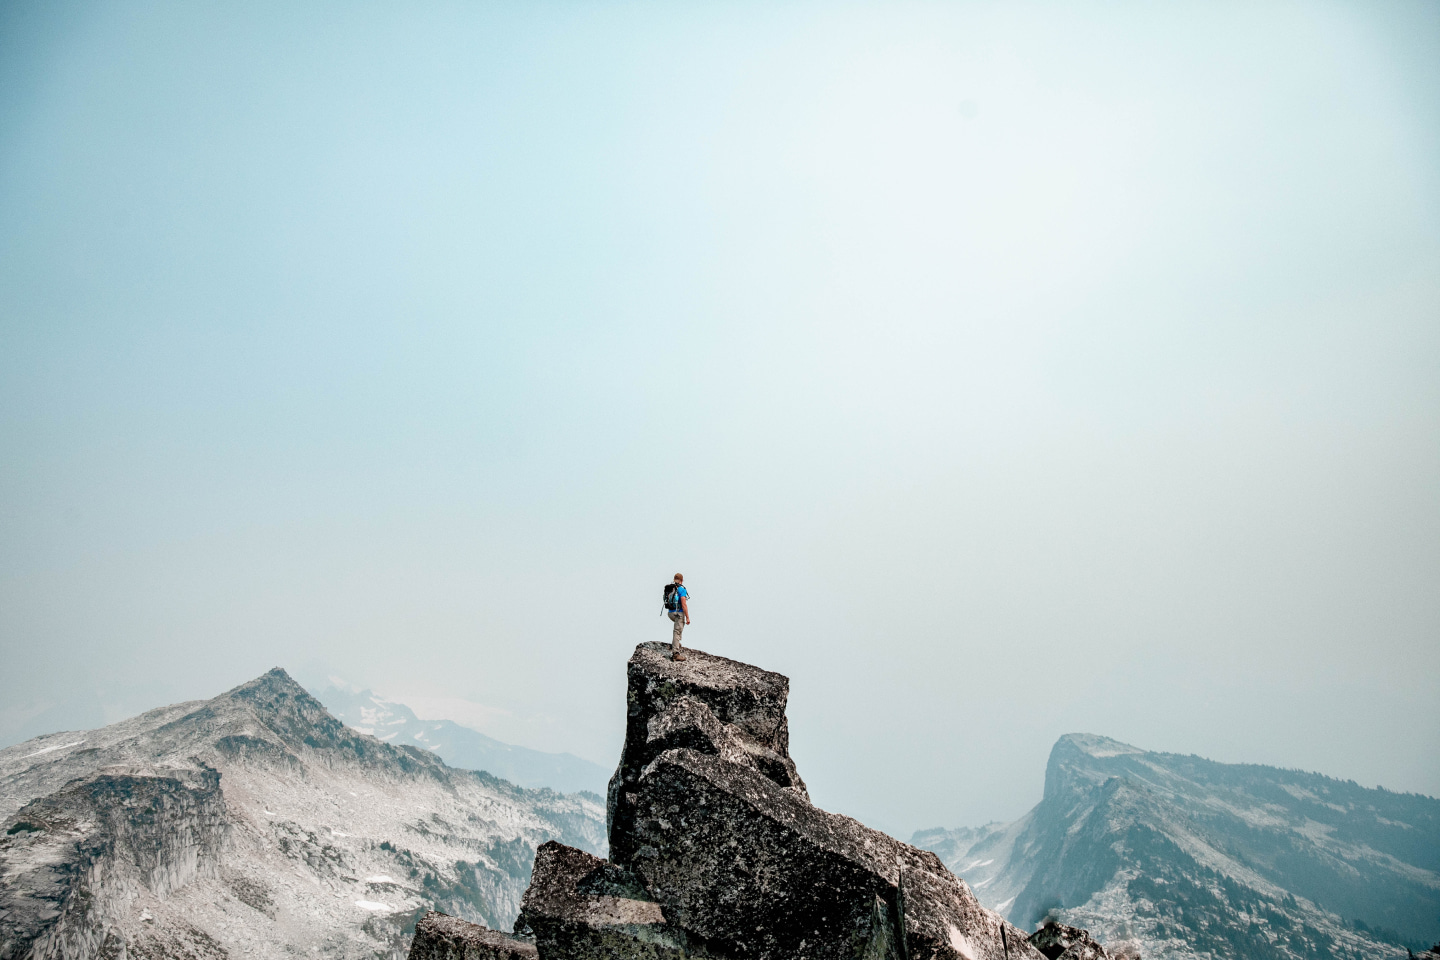 A man stands on top of a mountain cliff edge